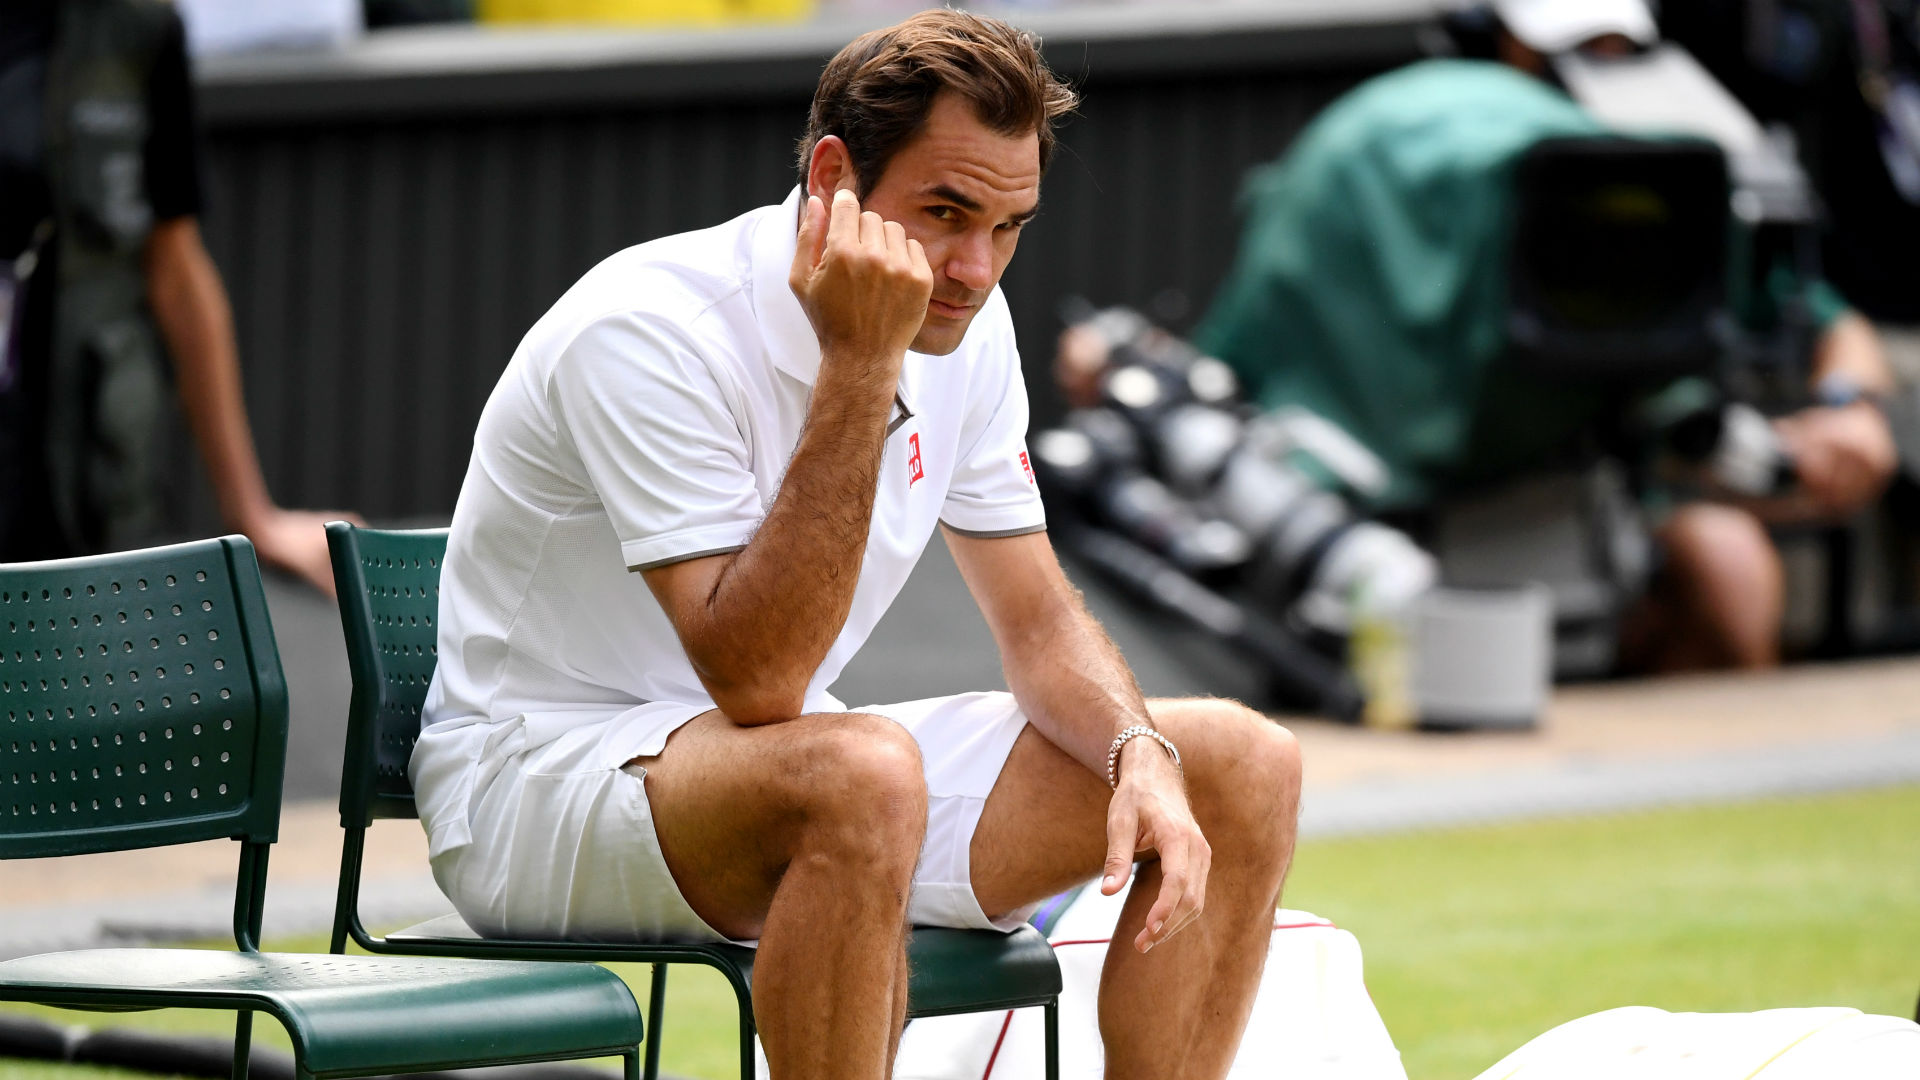 Wimbledon cancelled: Federer 'devastated', Halep 'so sad'